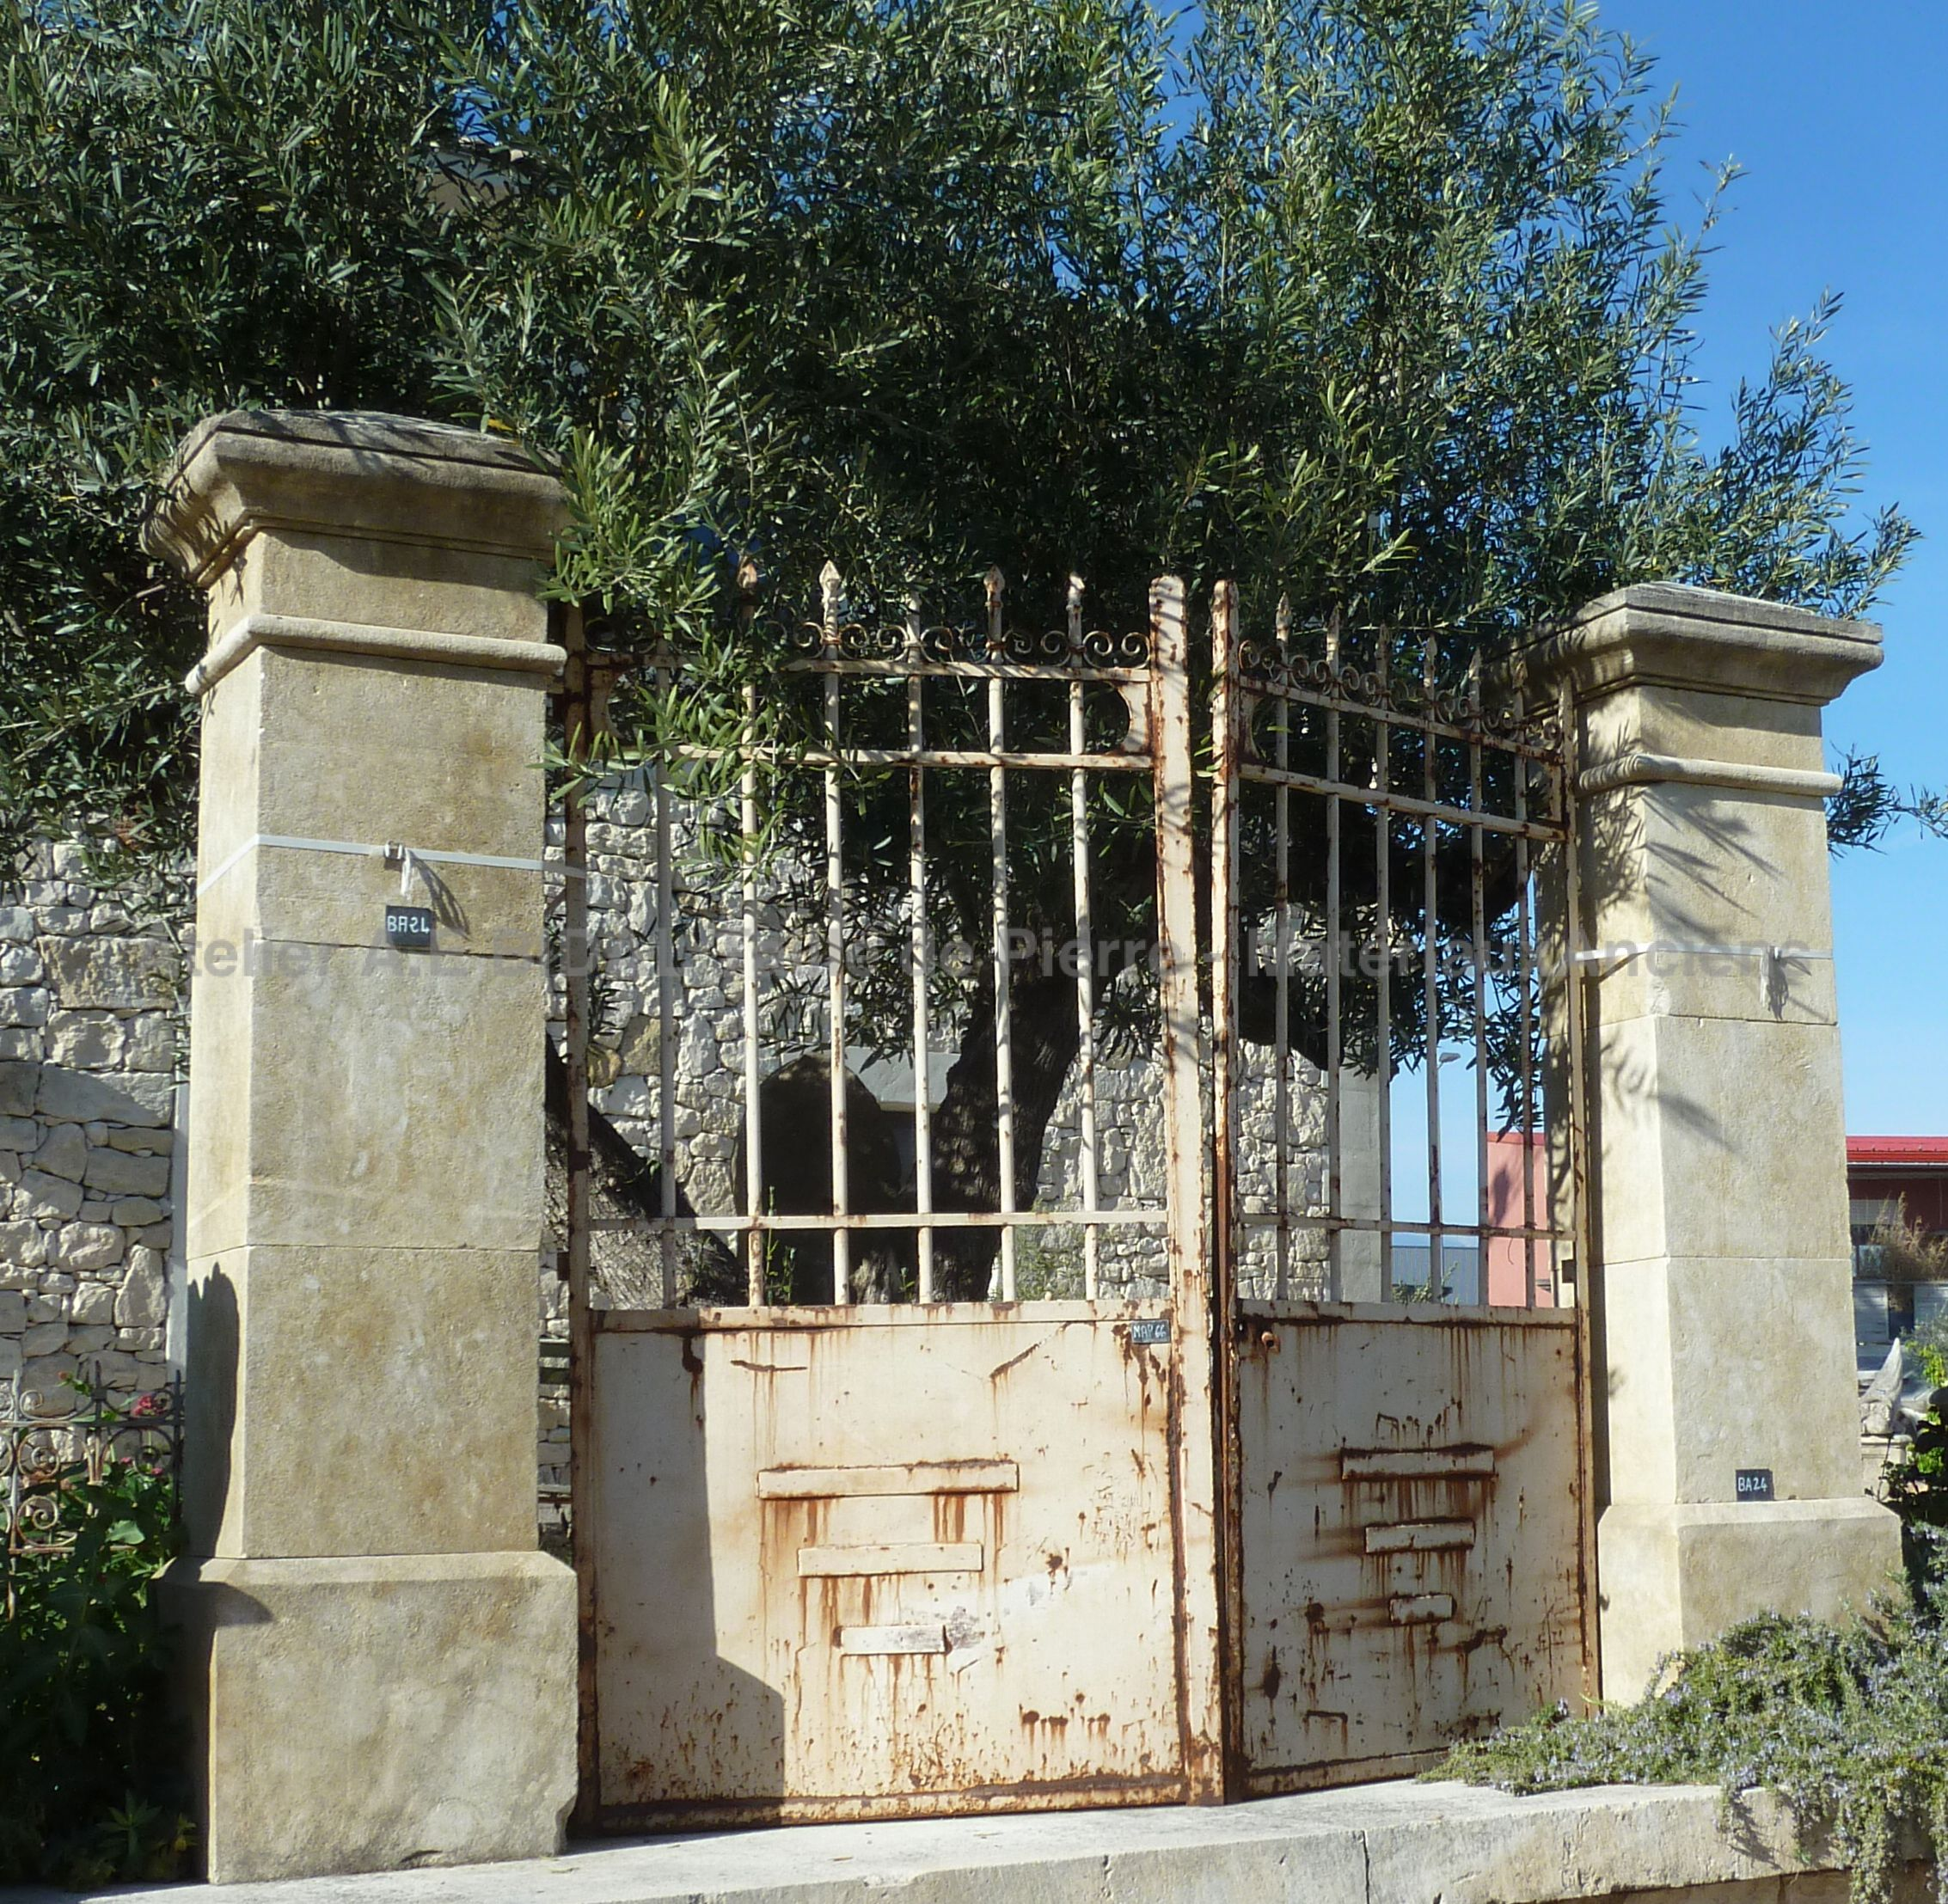 BA24 - Square pillars for gate carved into French limestone